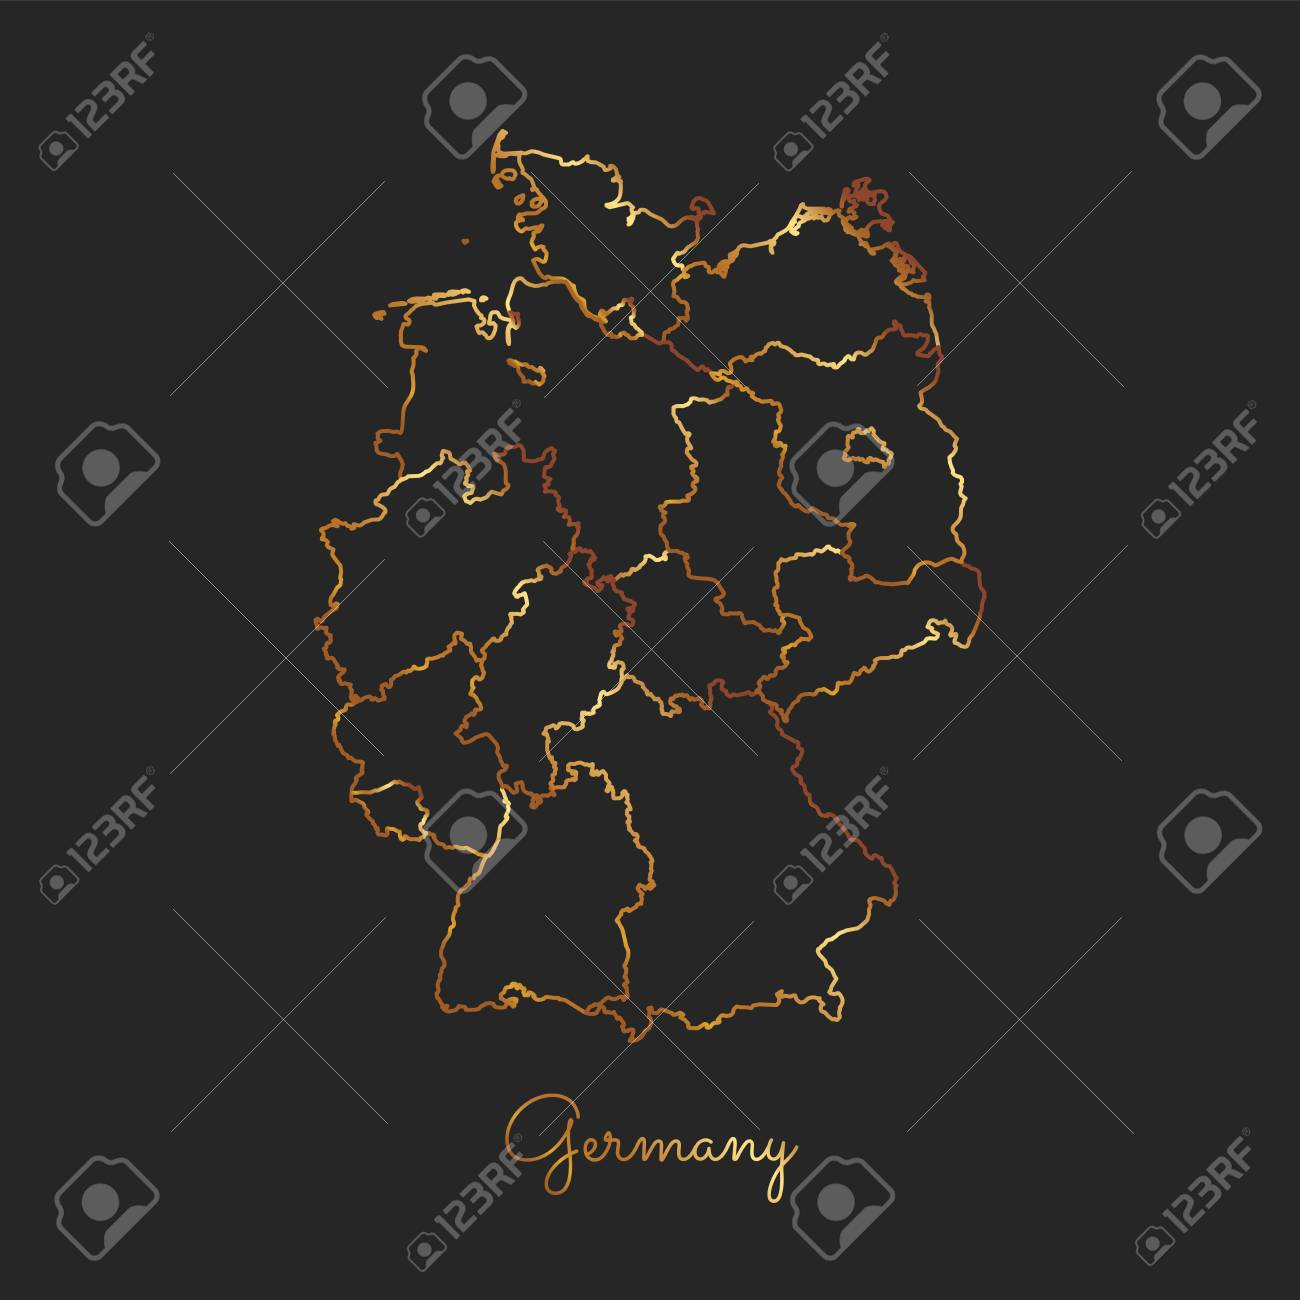 germany region map golden gradient outline on dark background detailed map of germany regions